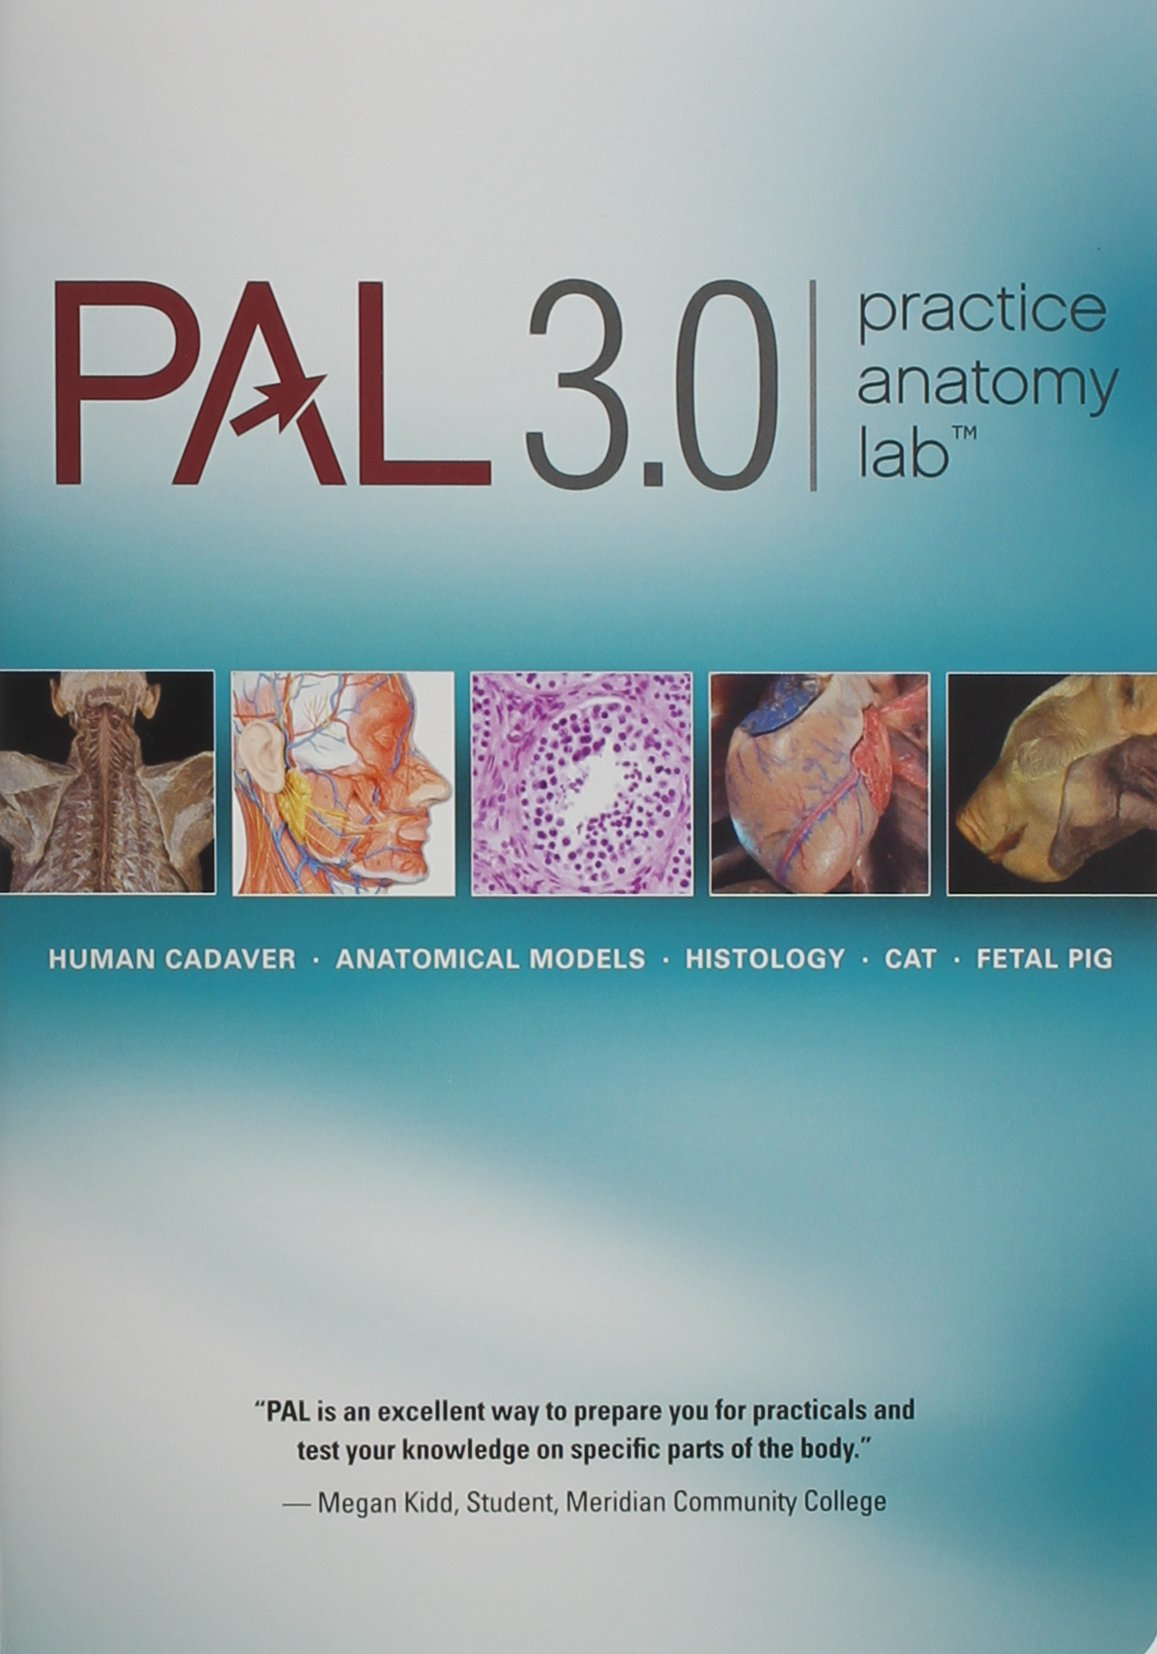 Buy Practice Anatomy Lab 3.0 Lab Guide with PAL 3.0 DVD Book Online ...